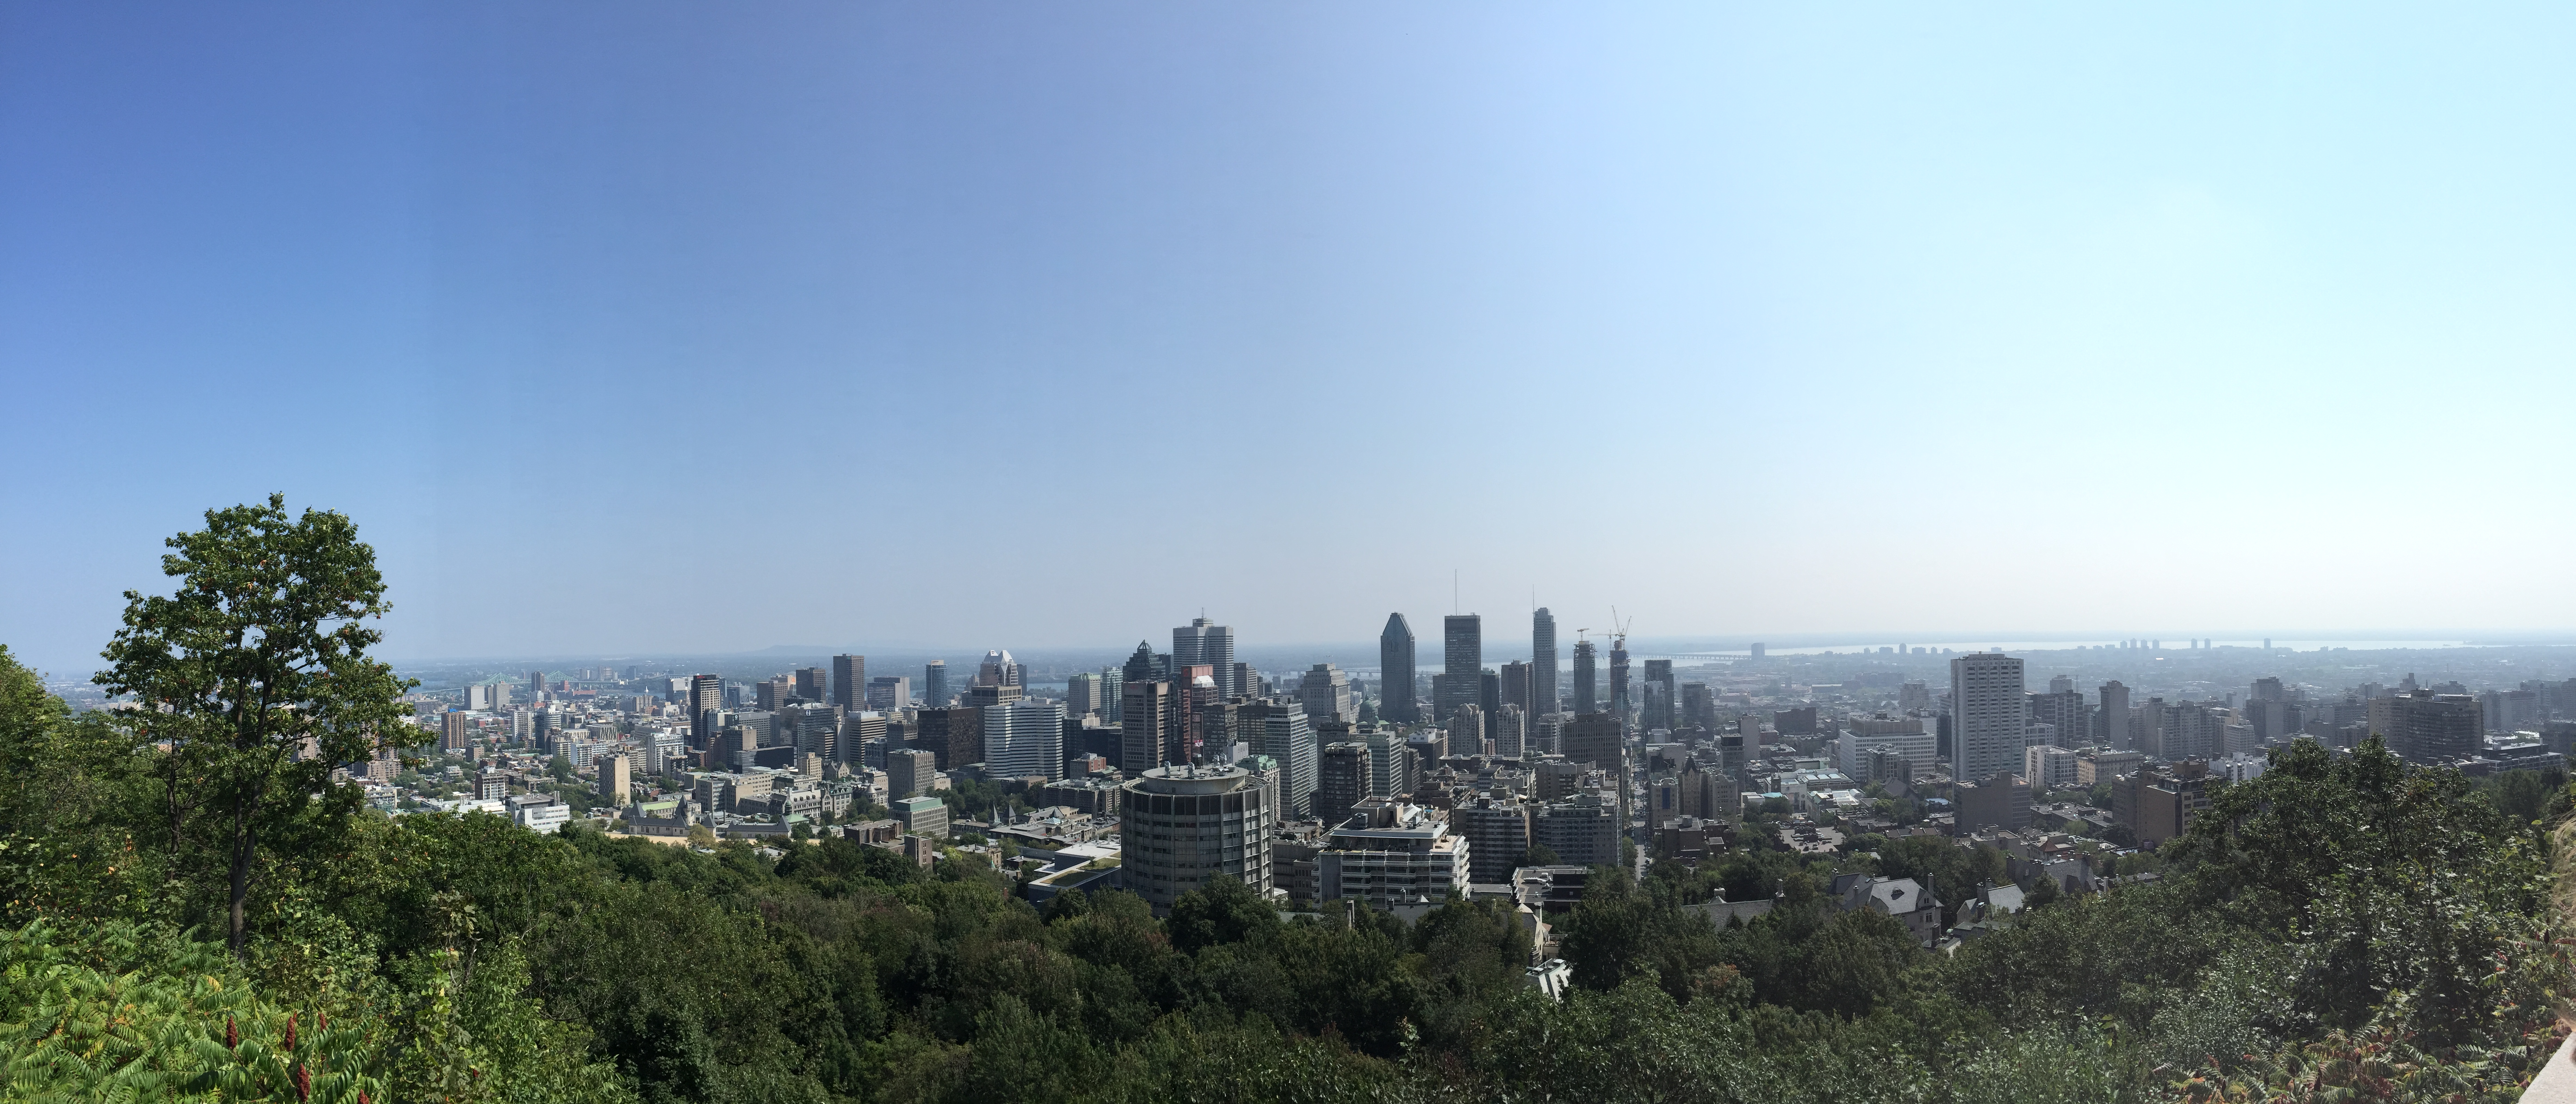 From my solo trip to Montreal!